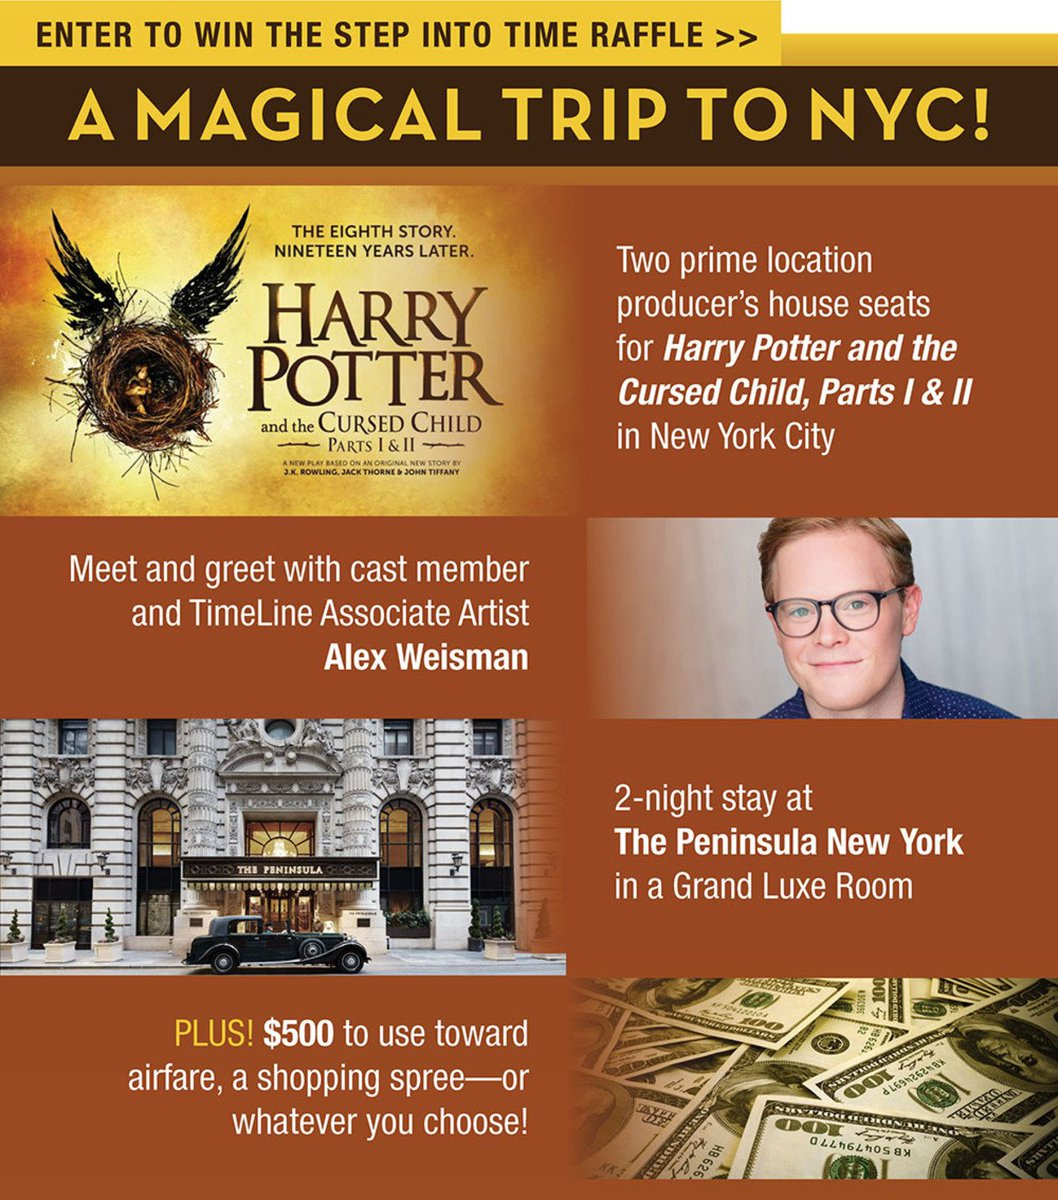 Also details on a #CursedChild raffle by @TimeLineTheatre for a trip to New York to see @HPPlayNYC - theres still a few hours left to enter! the-leaky-cauldron.org/2018/03/14/a-n…